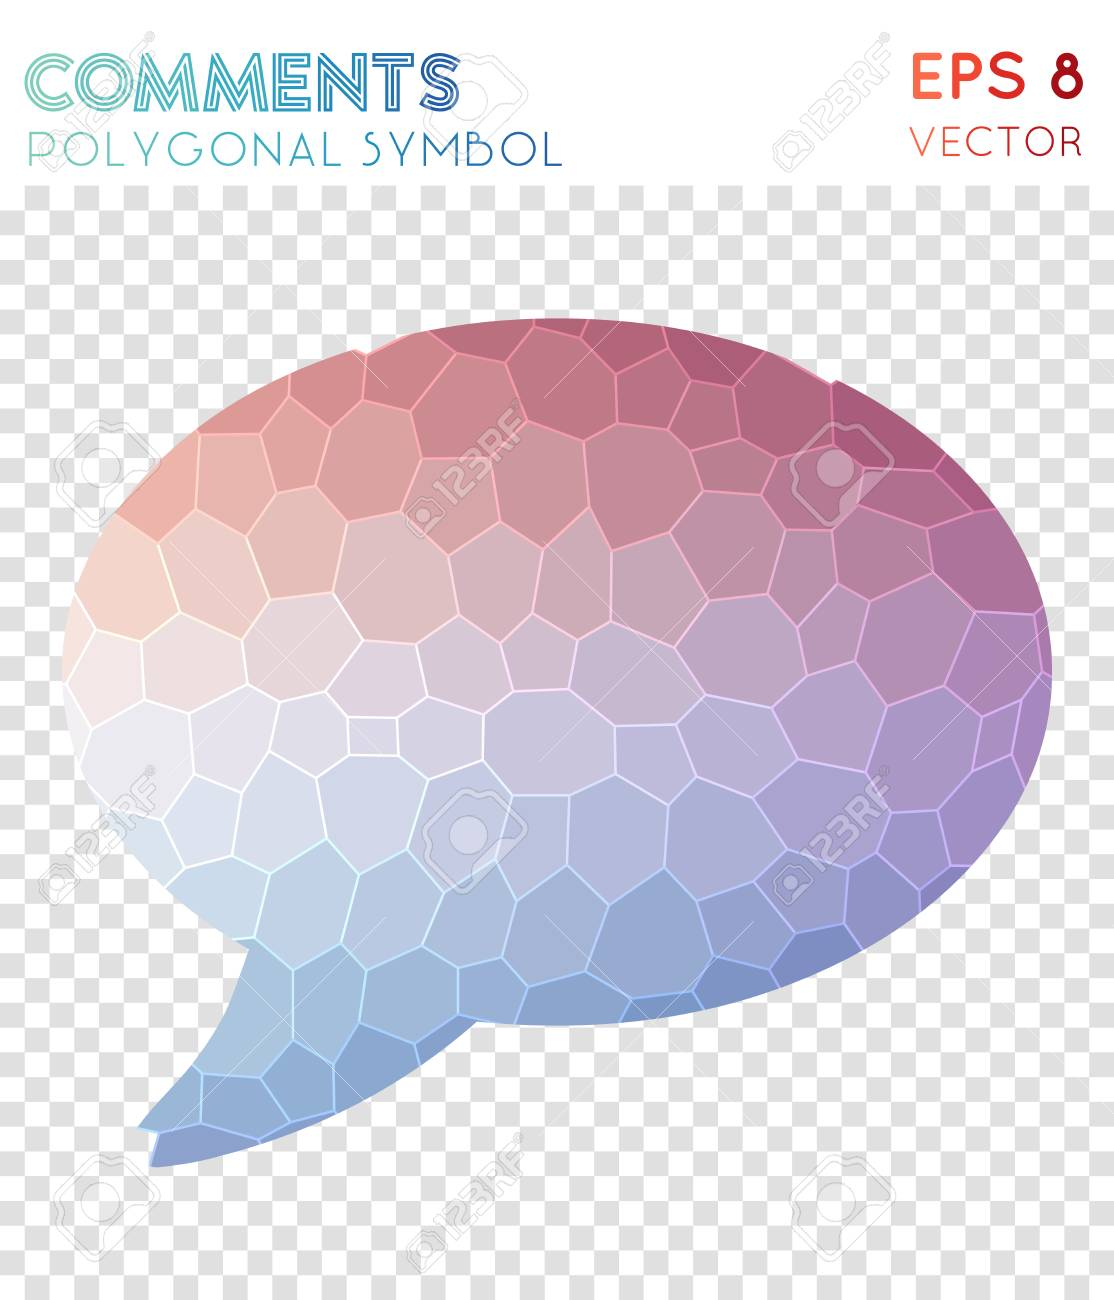 Schon Banco De Imagens   Comment Polygonal Symbol. Alive Mosaic Style Symbol.  Grand Low Poly Style. Modern Design. Comment Icon For Infographics Or  Presentation.